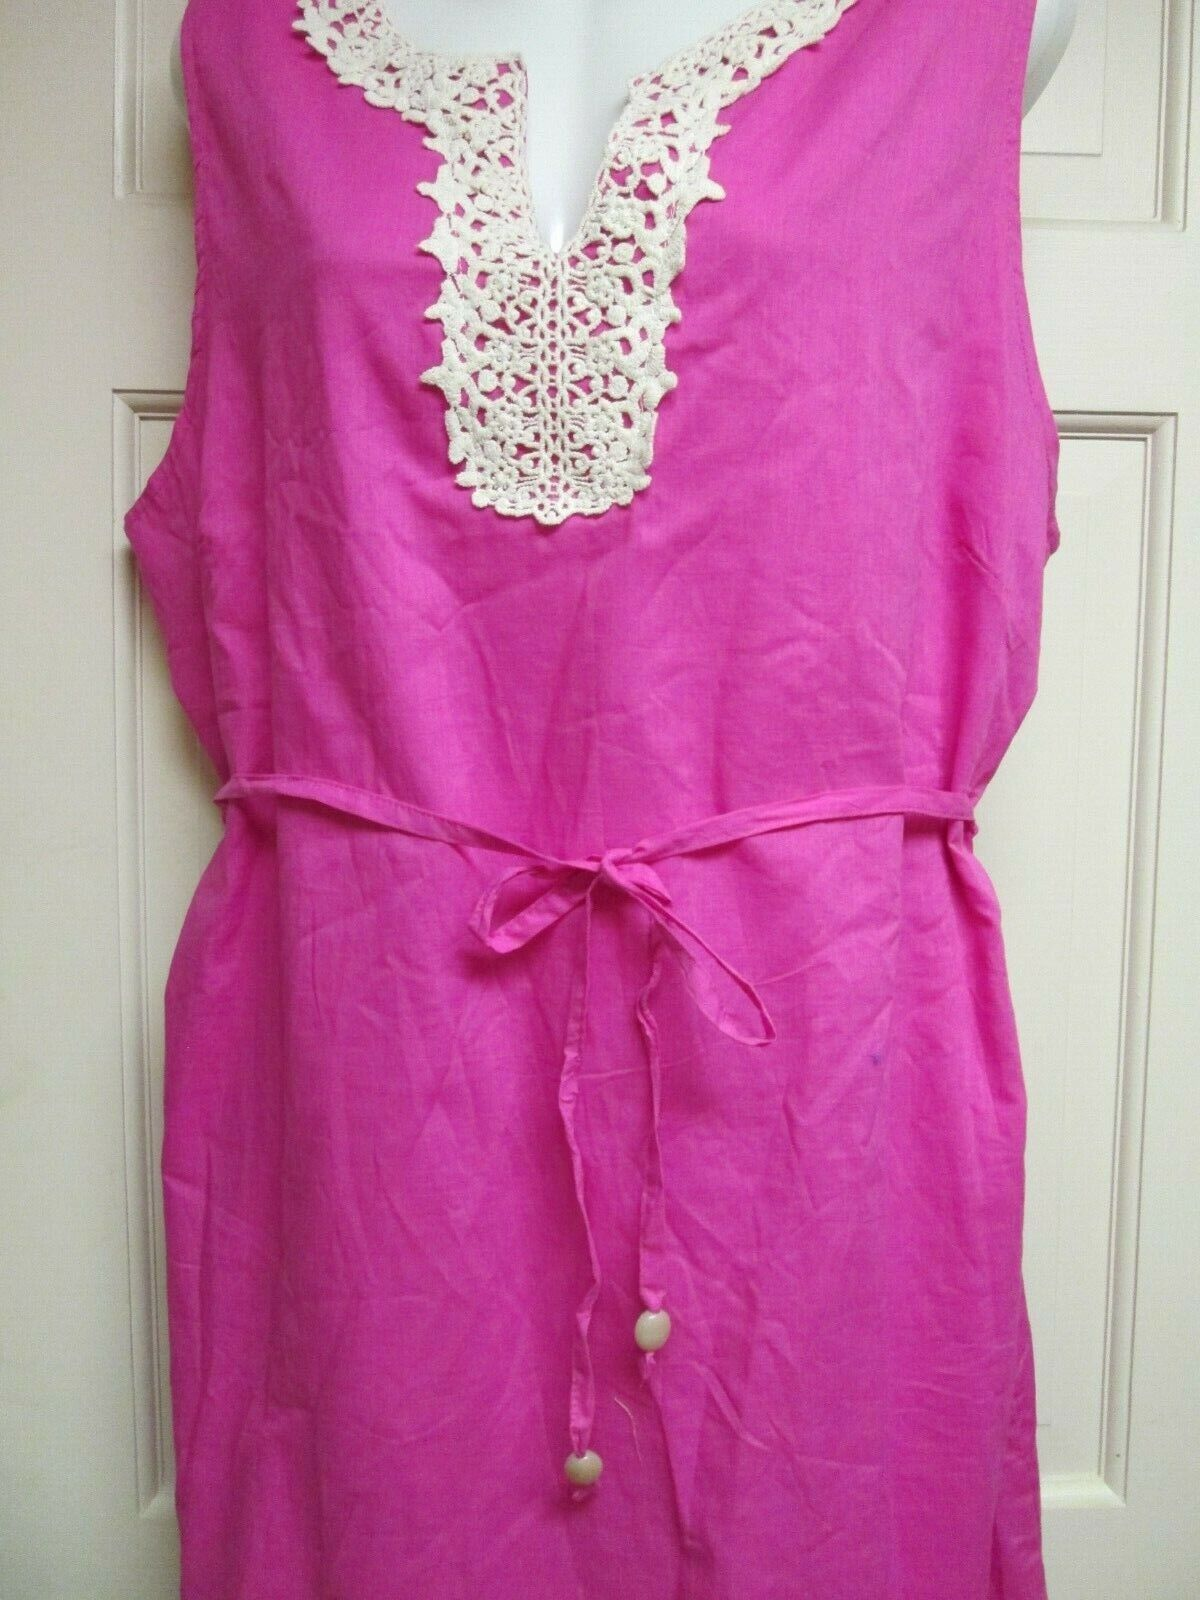 Pink Crochet Trim Cotton Dress by Mud Pie, Size Ex. Large, NWT